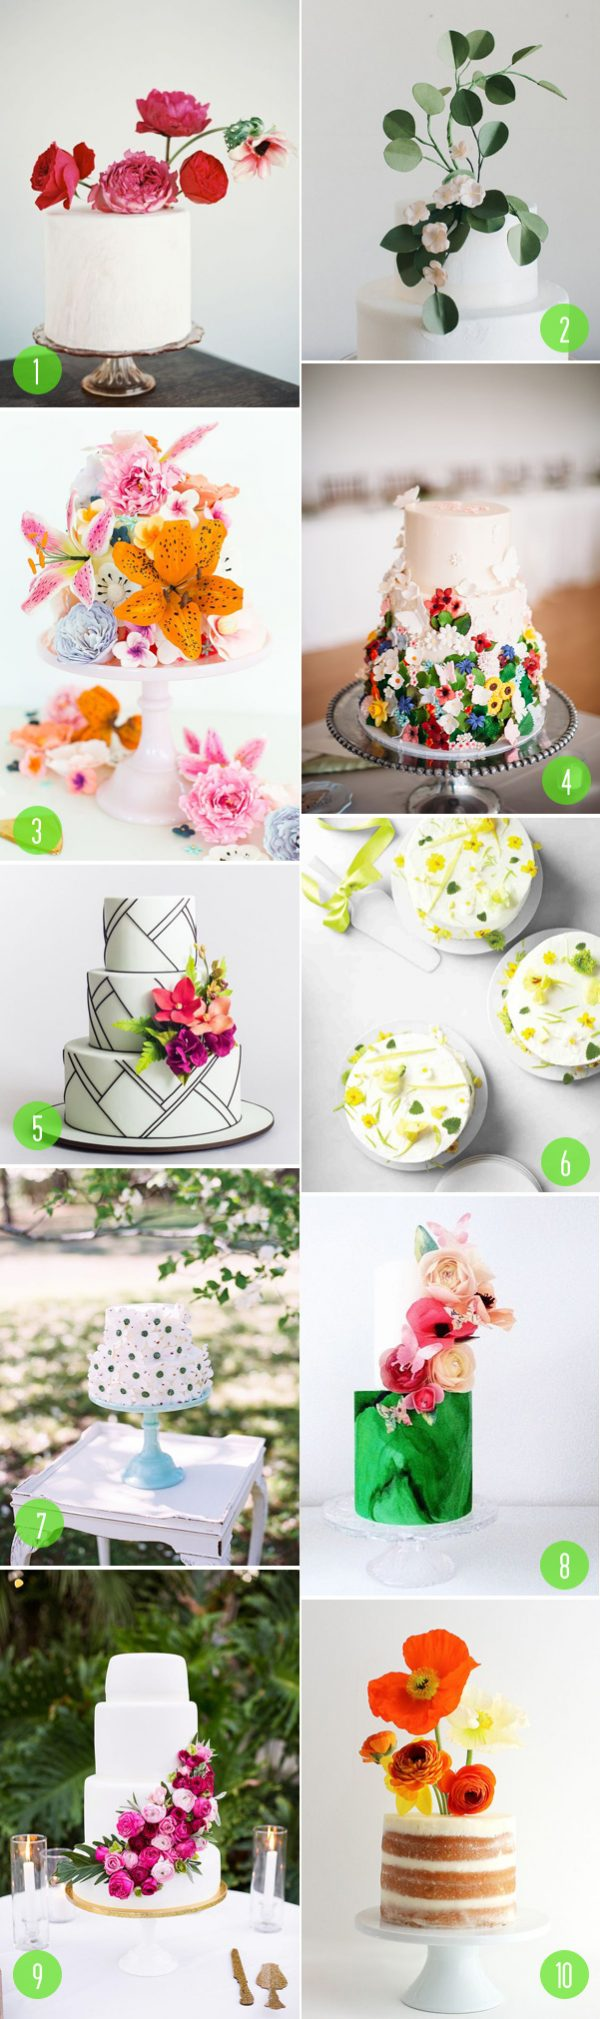 top 10: floral cakes